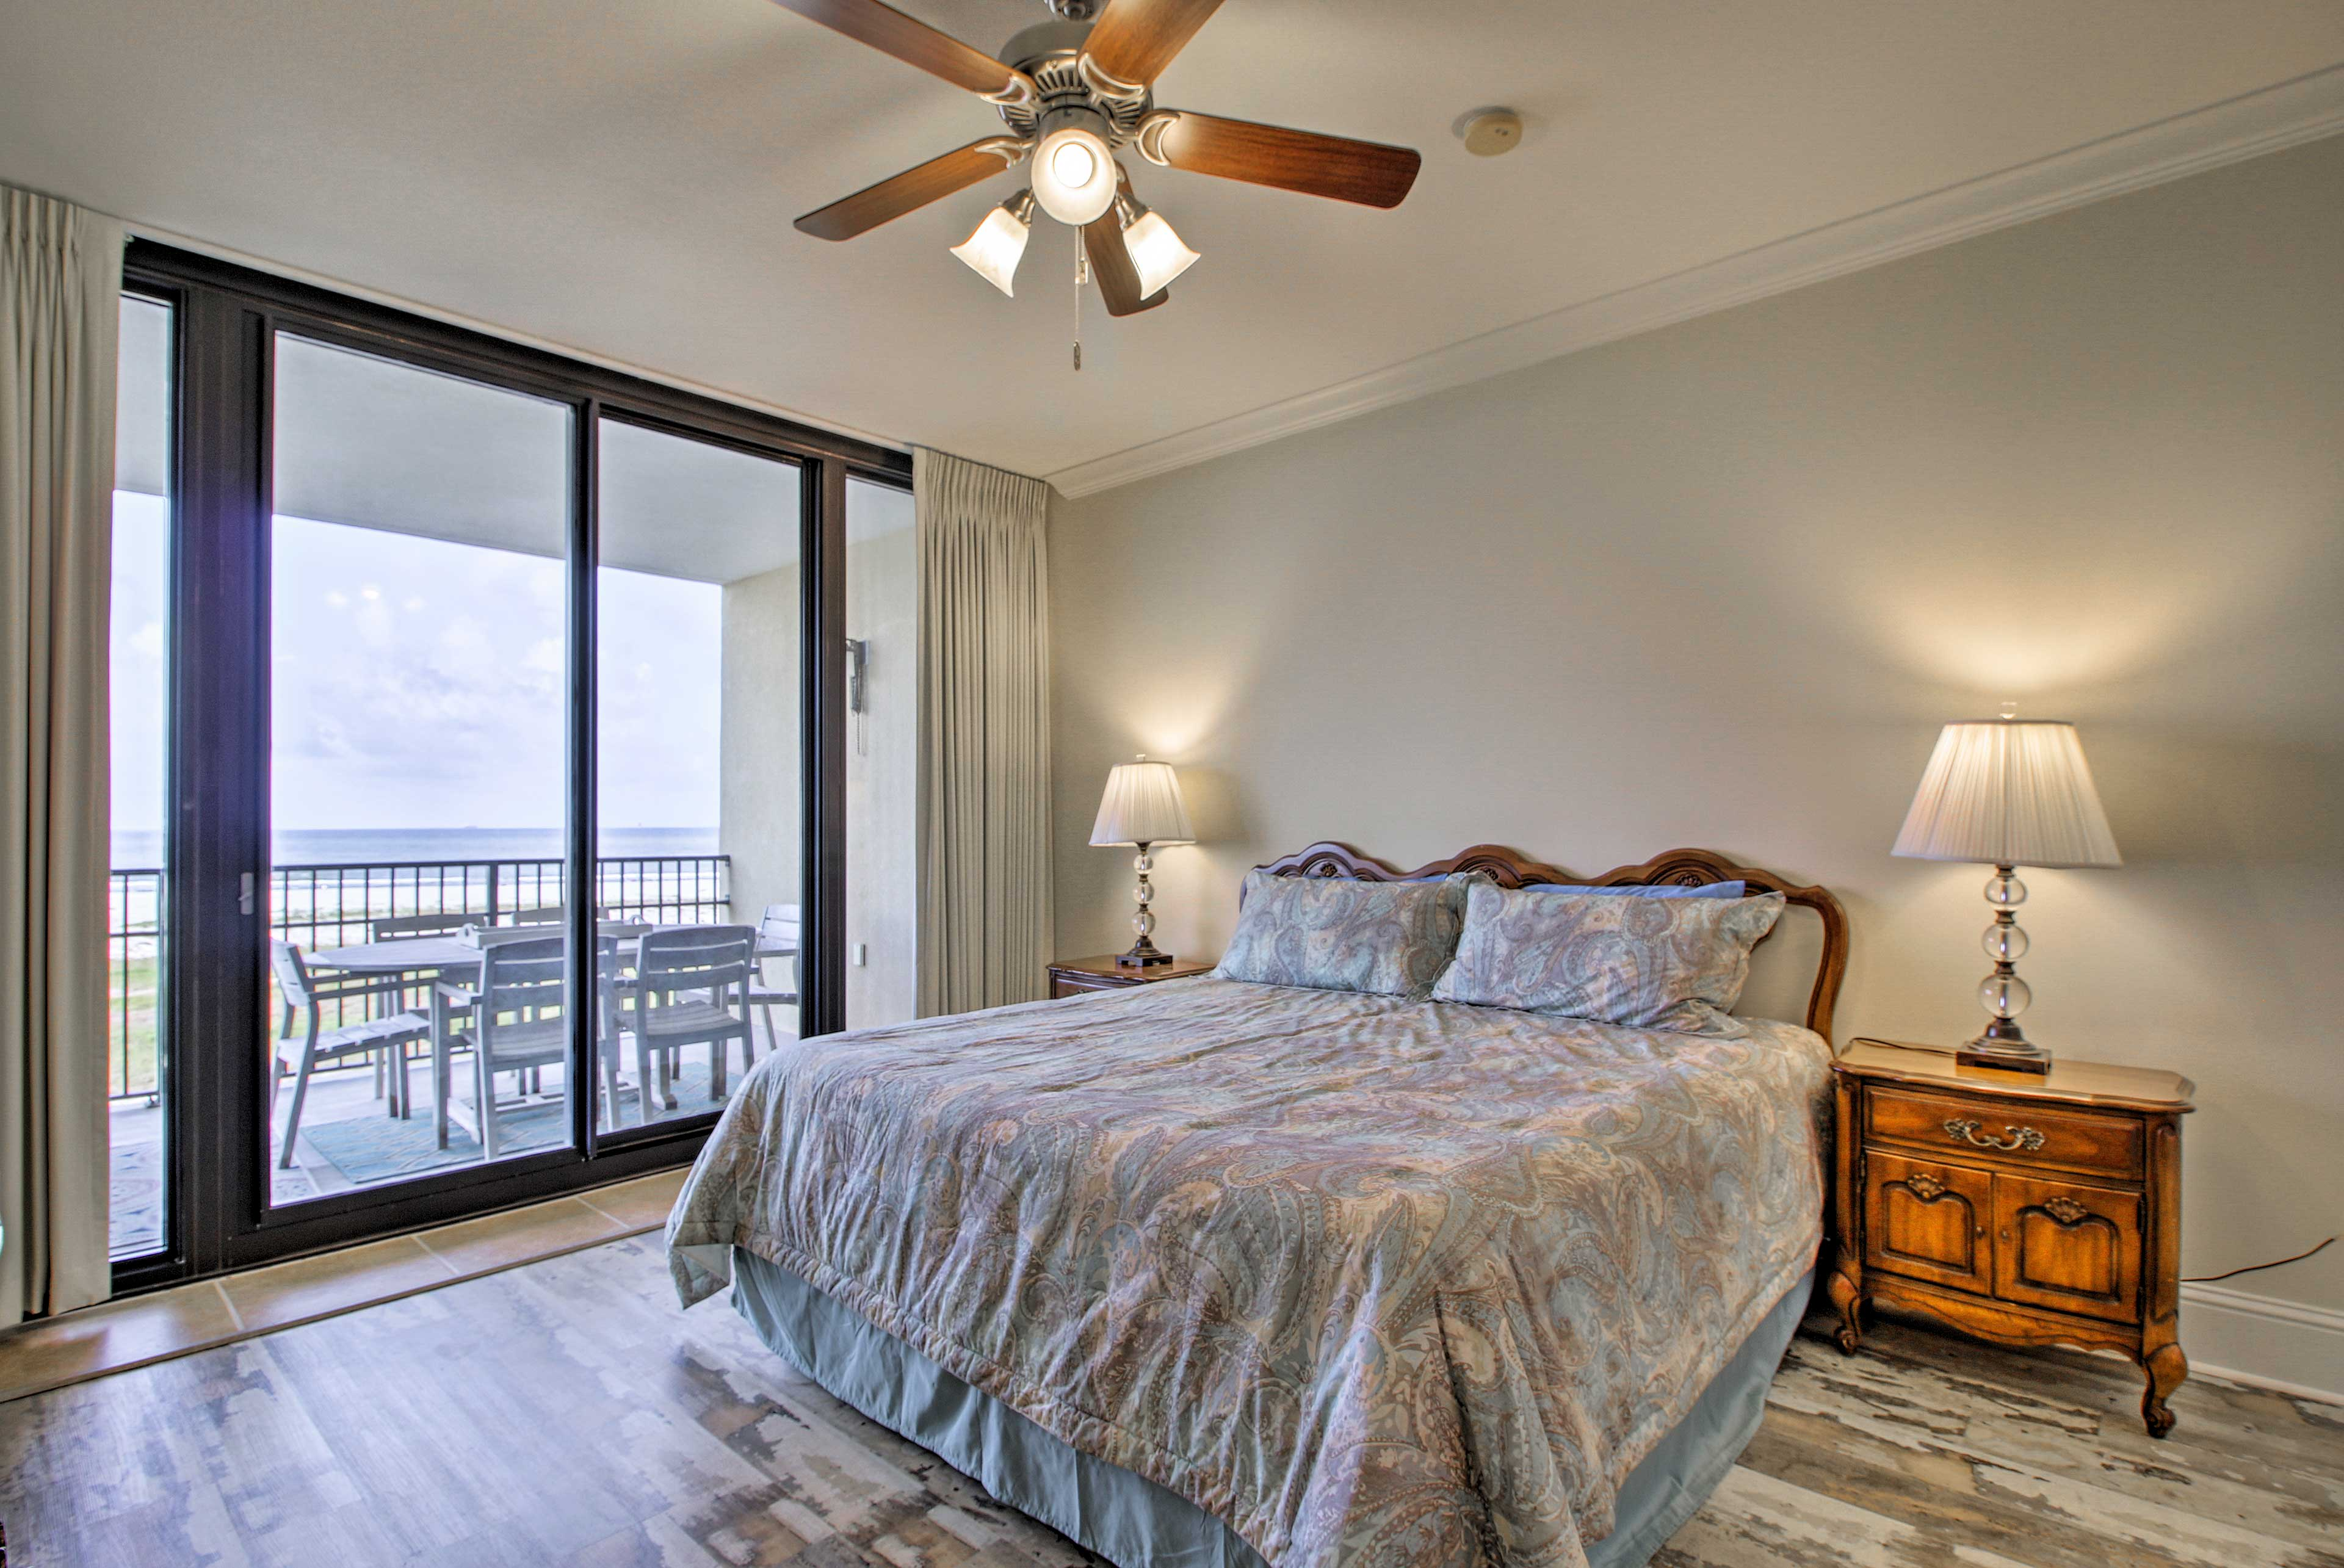 You'll love the master bedroom with a king bed and balcony access.